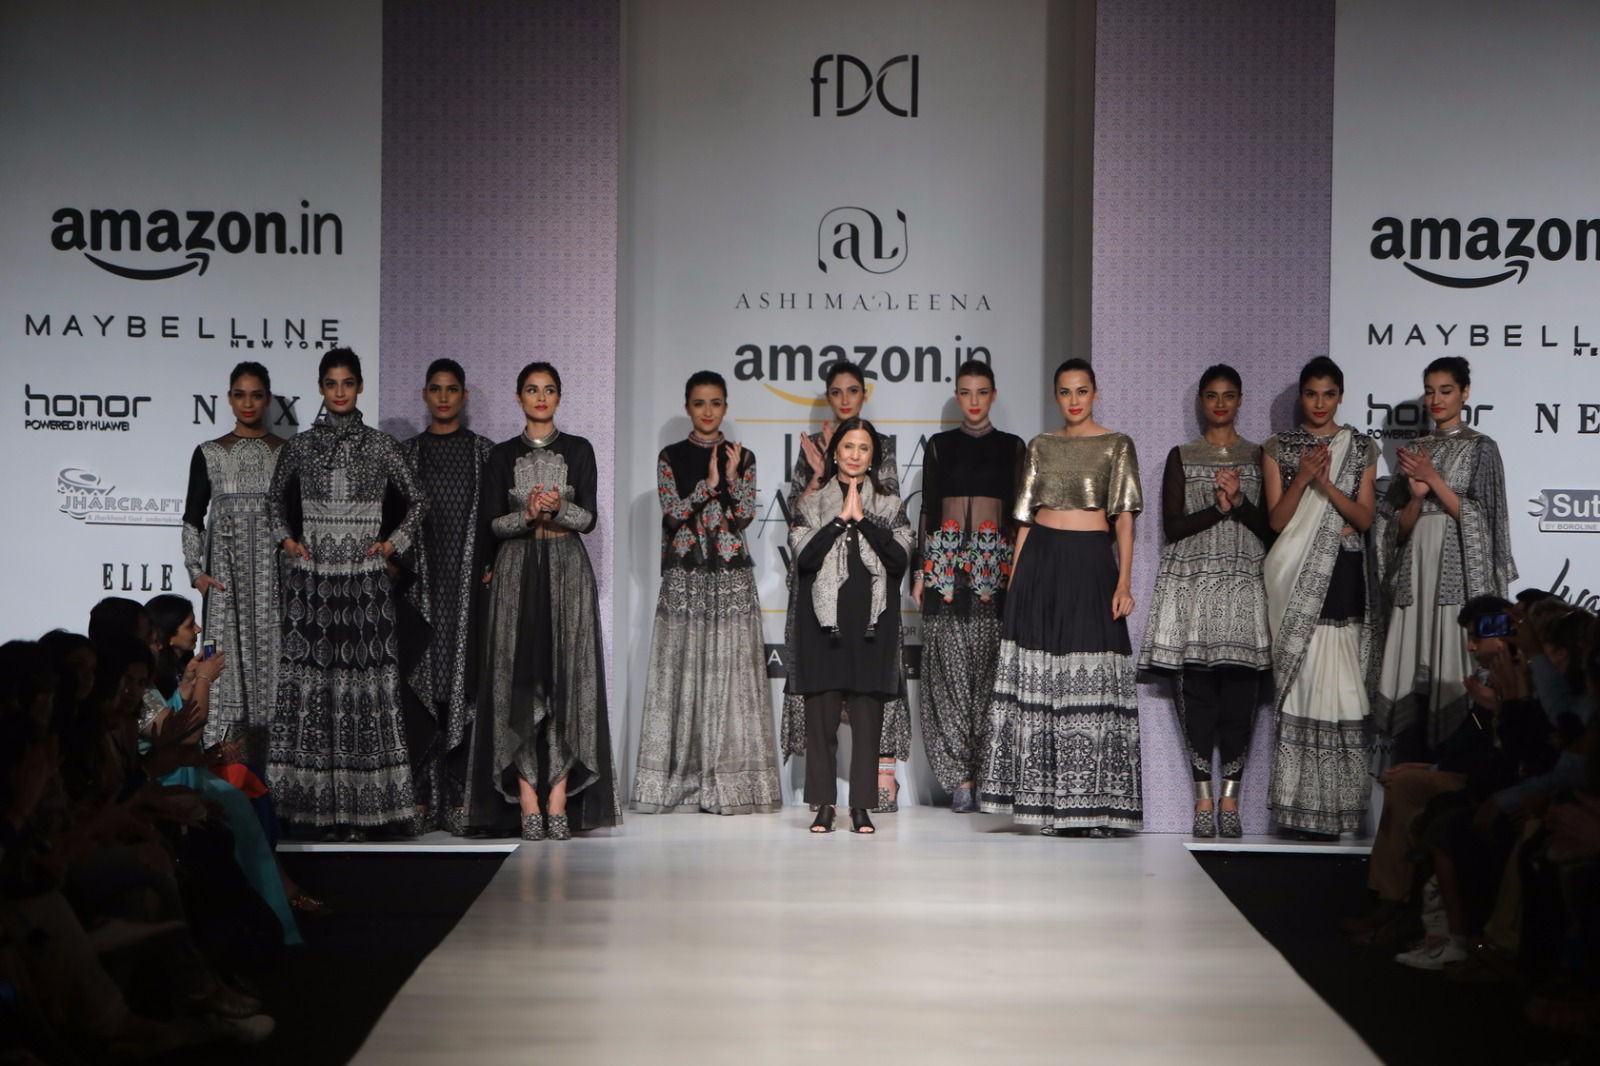 http://www.talksassy.com/wp-content/uploads/2017/03/Amazon-India-Fashion-Week-Autumn-Winter-2017-33.jpg